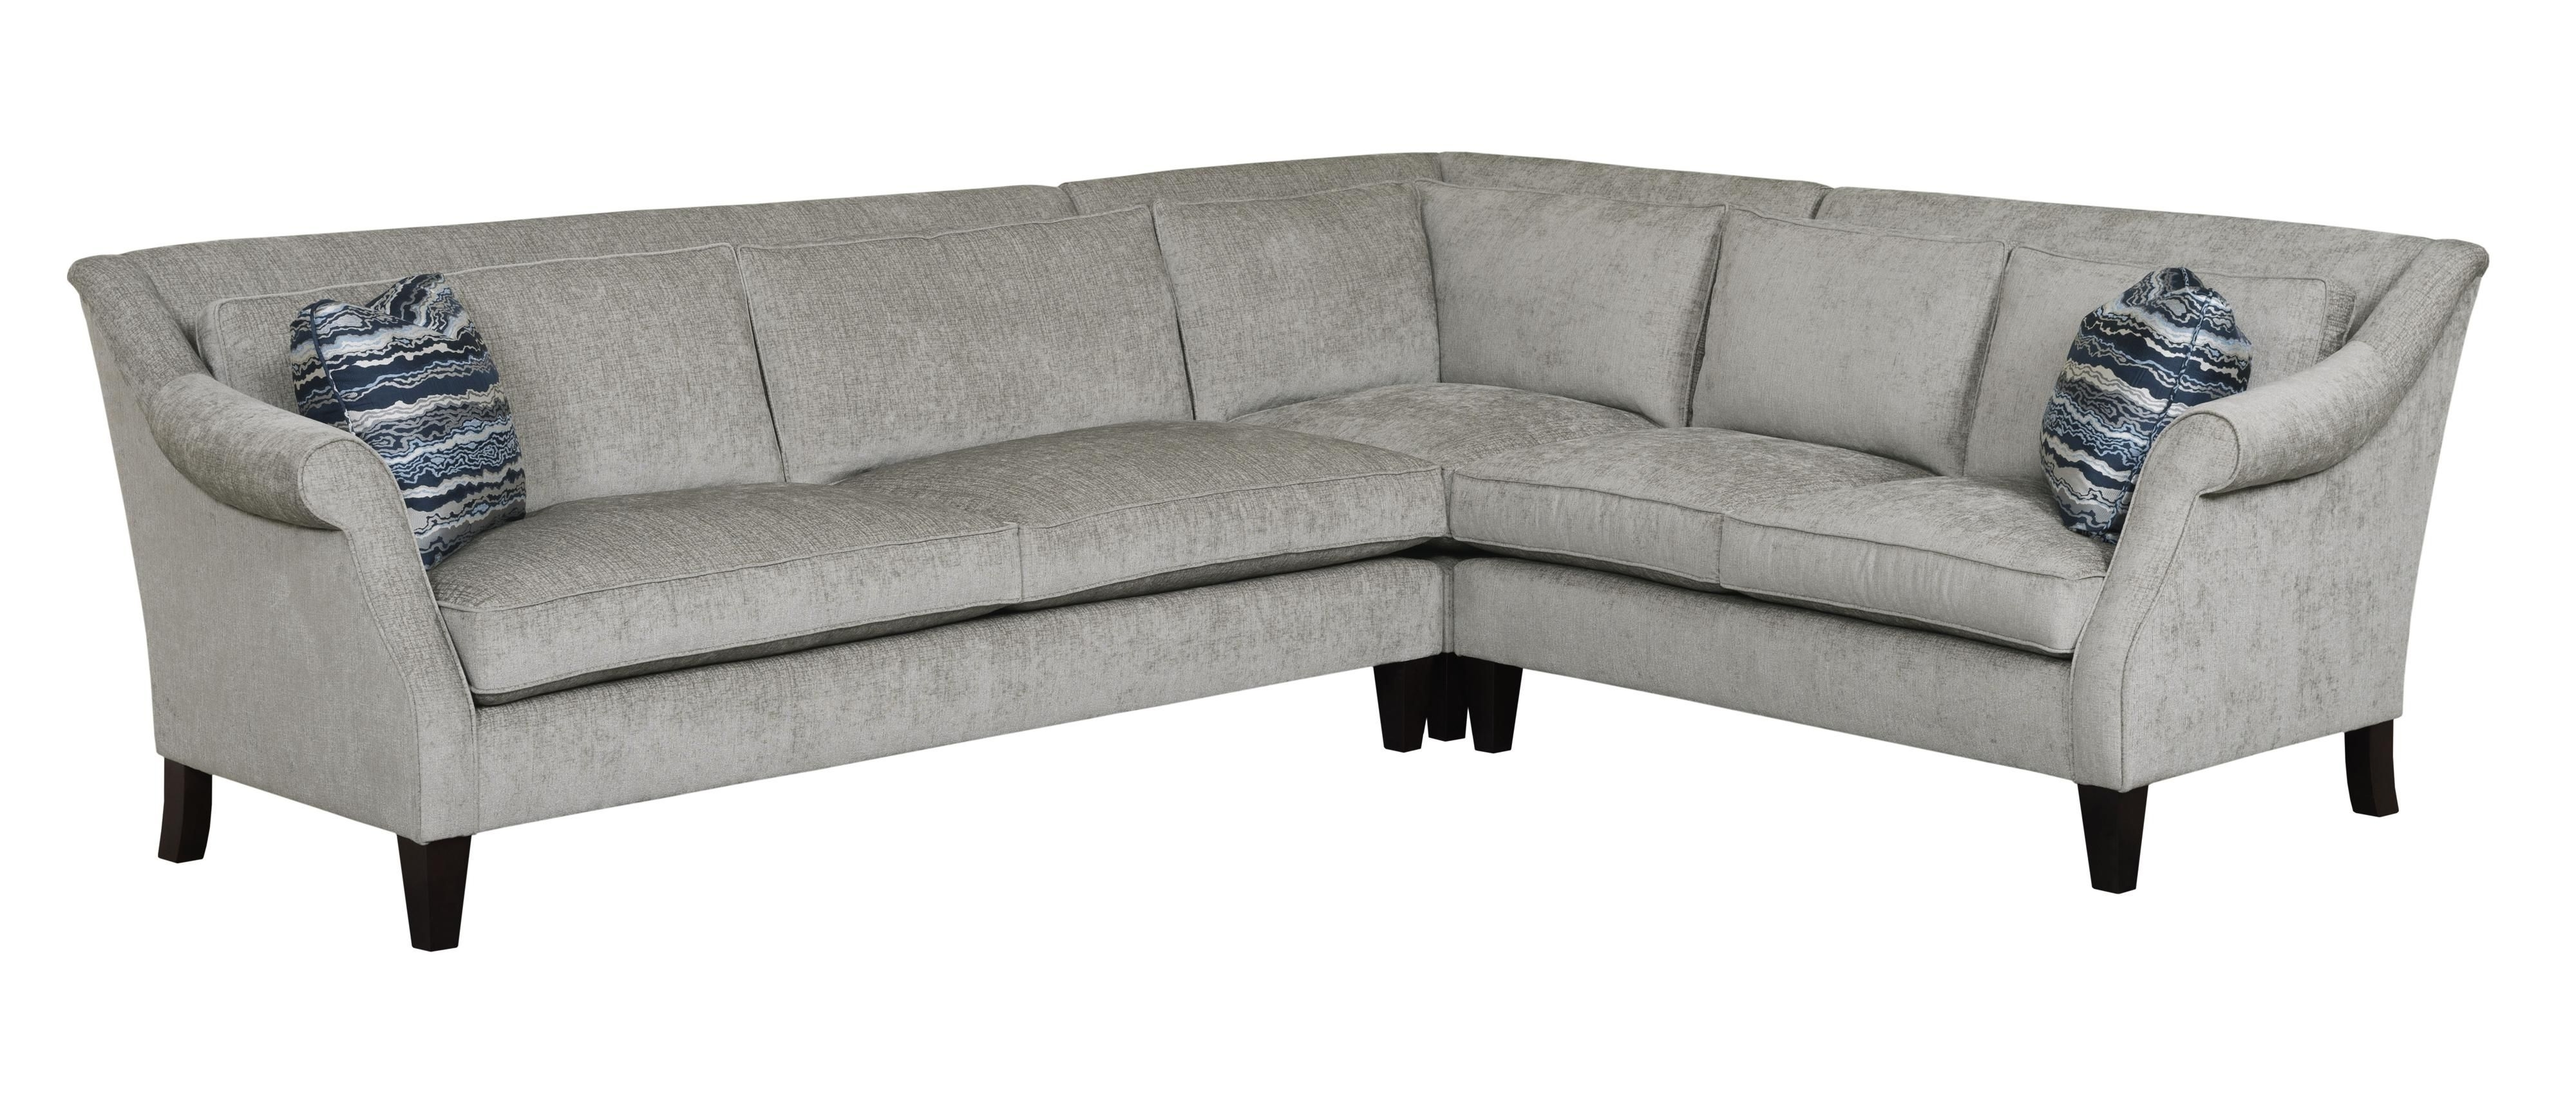 Classic Gray L Shaped Sectional Sofa Design Ideas For Living Room Within Preferred Naples Fl Sectional Sofas (View 3 of 20)